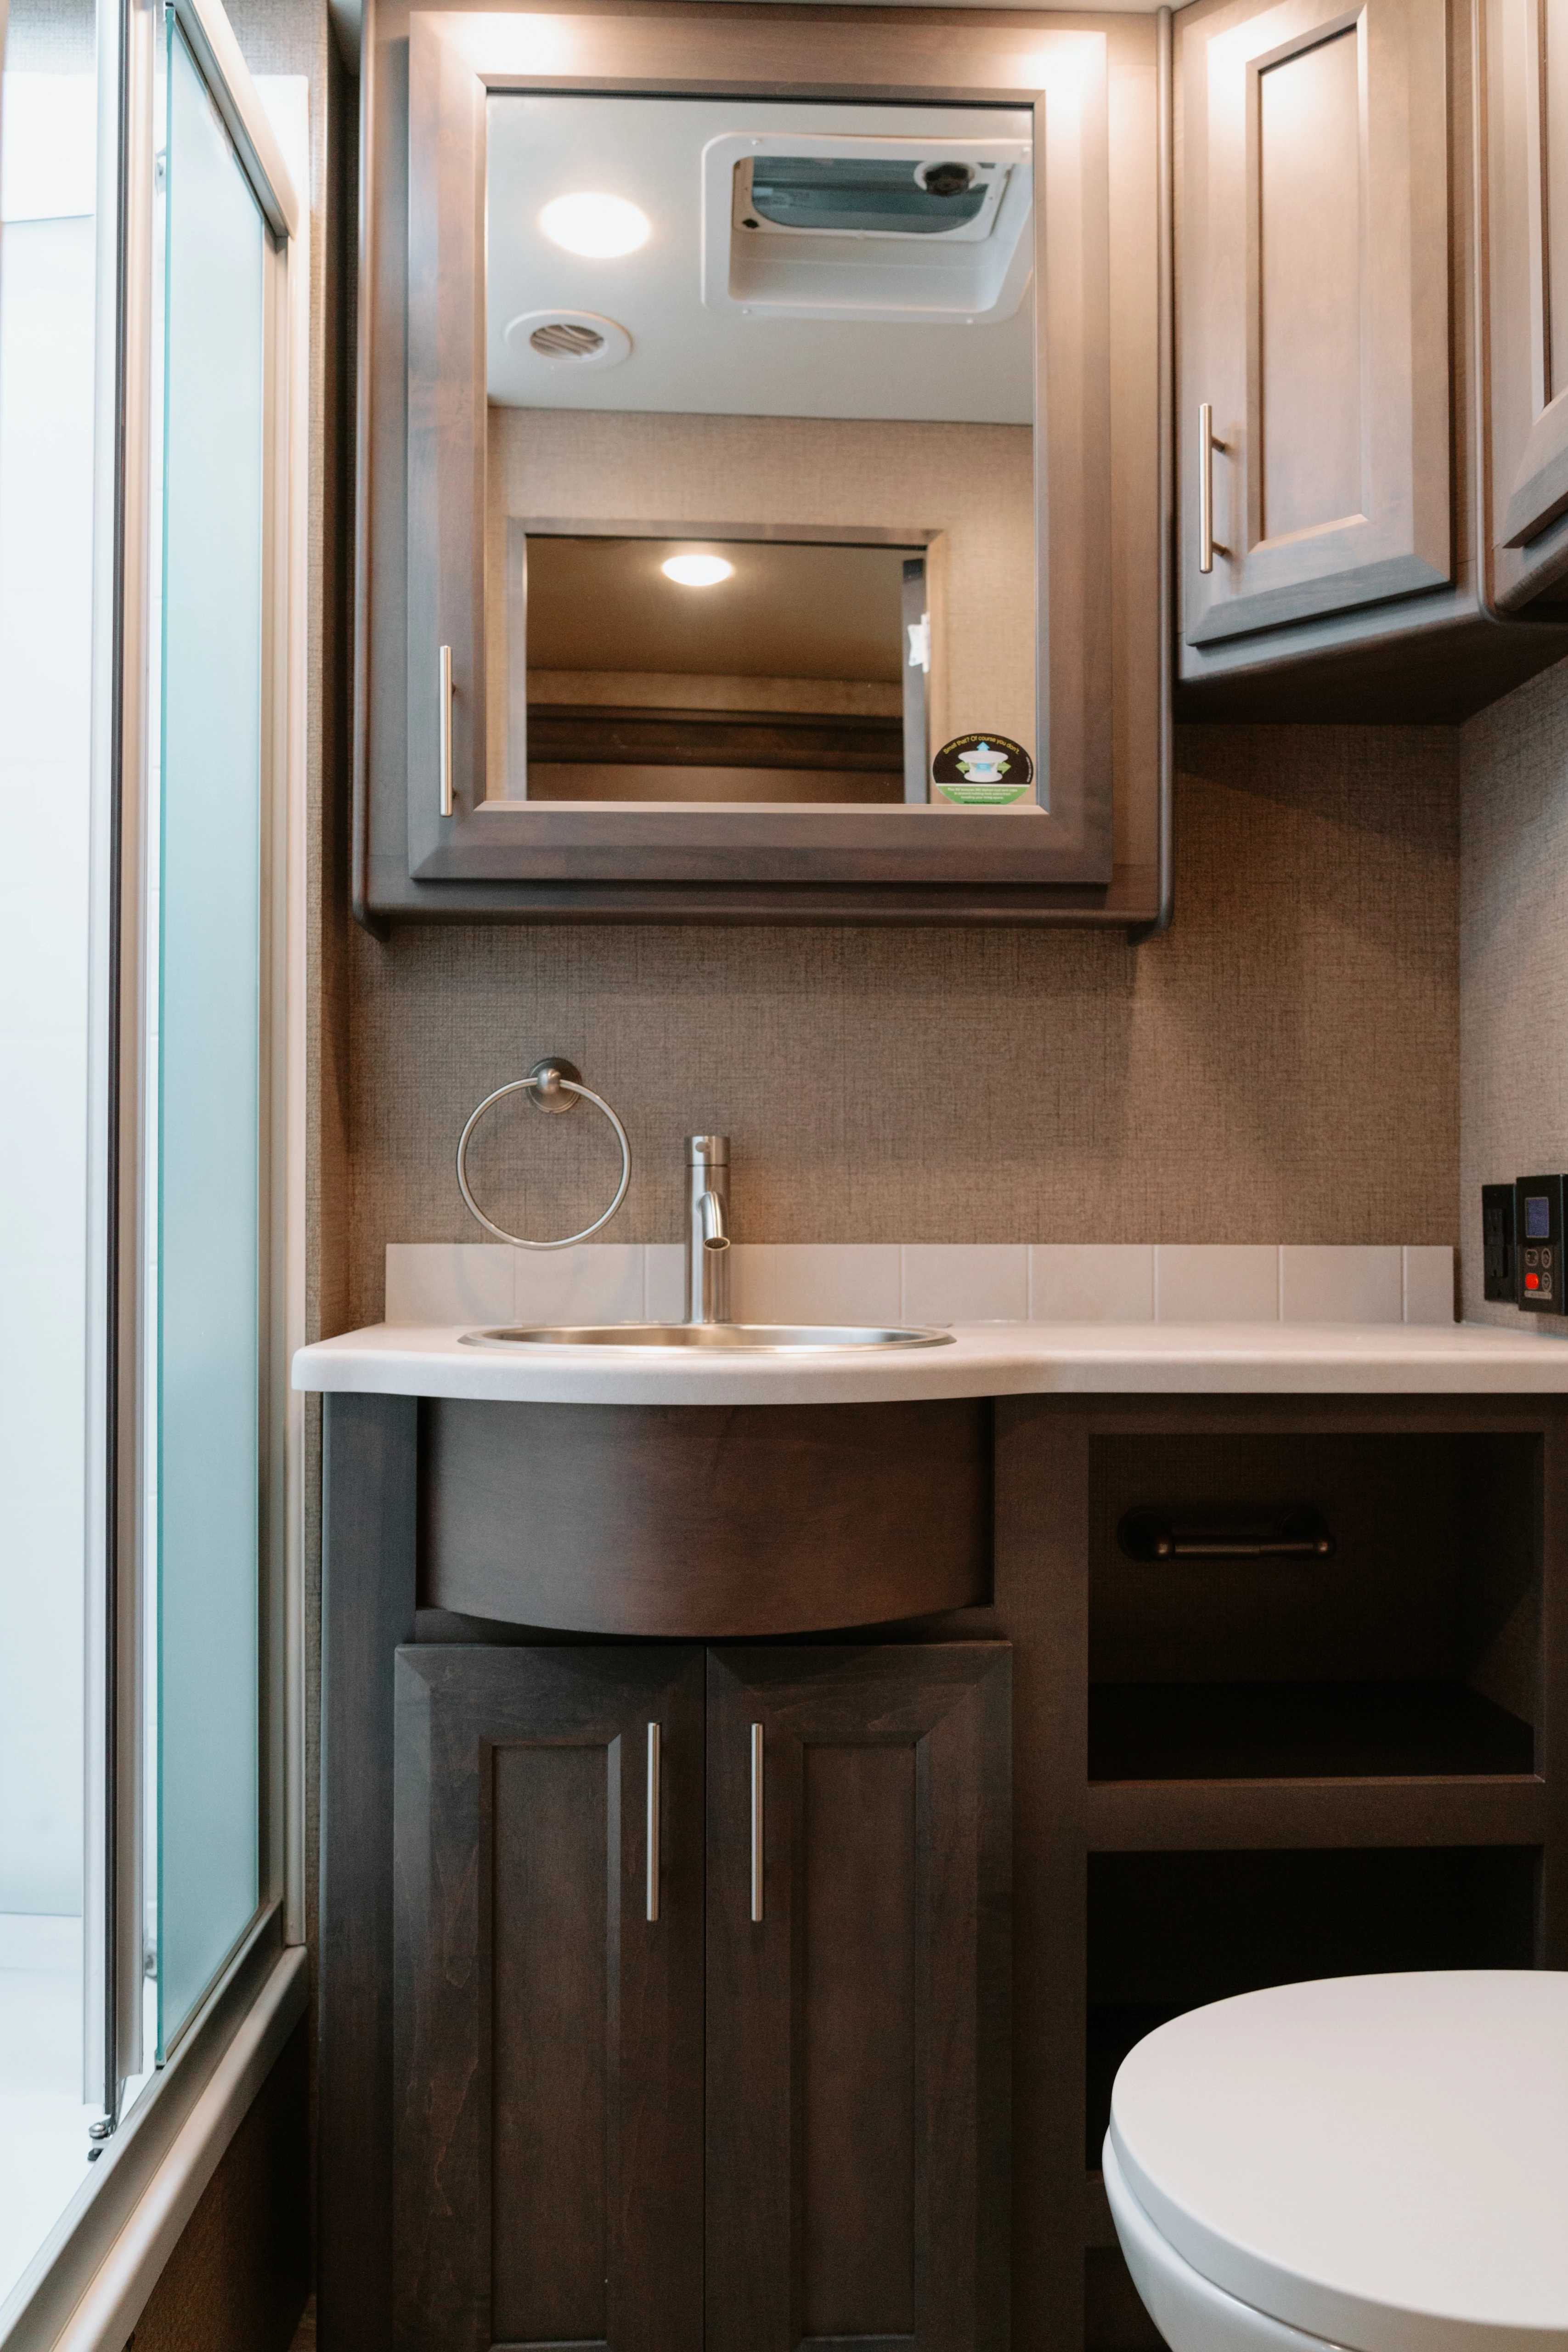 RV Bathroom interior with wood cabinetry and toilet